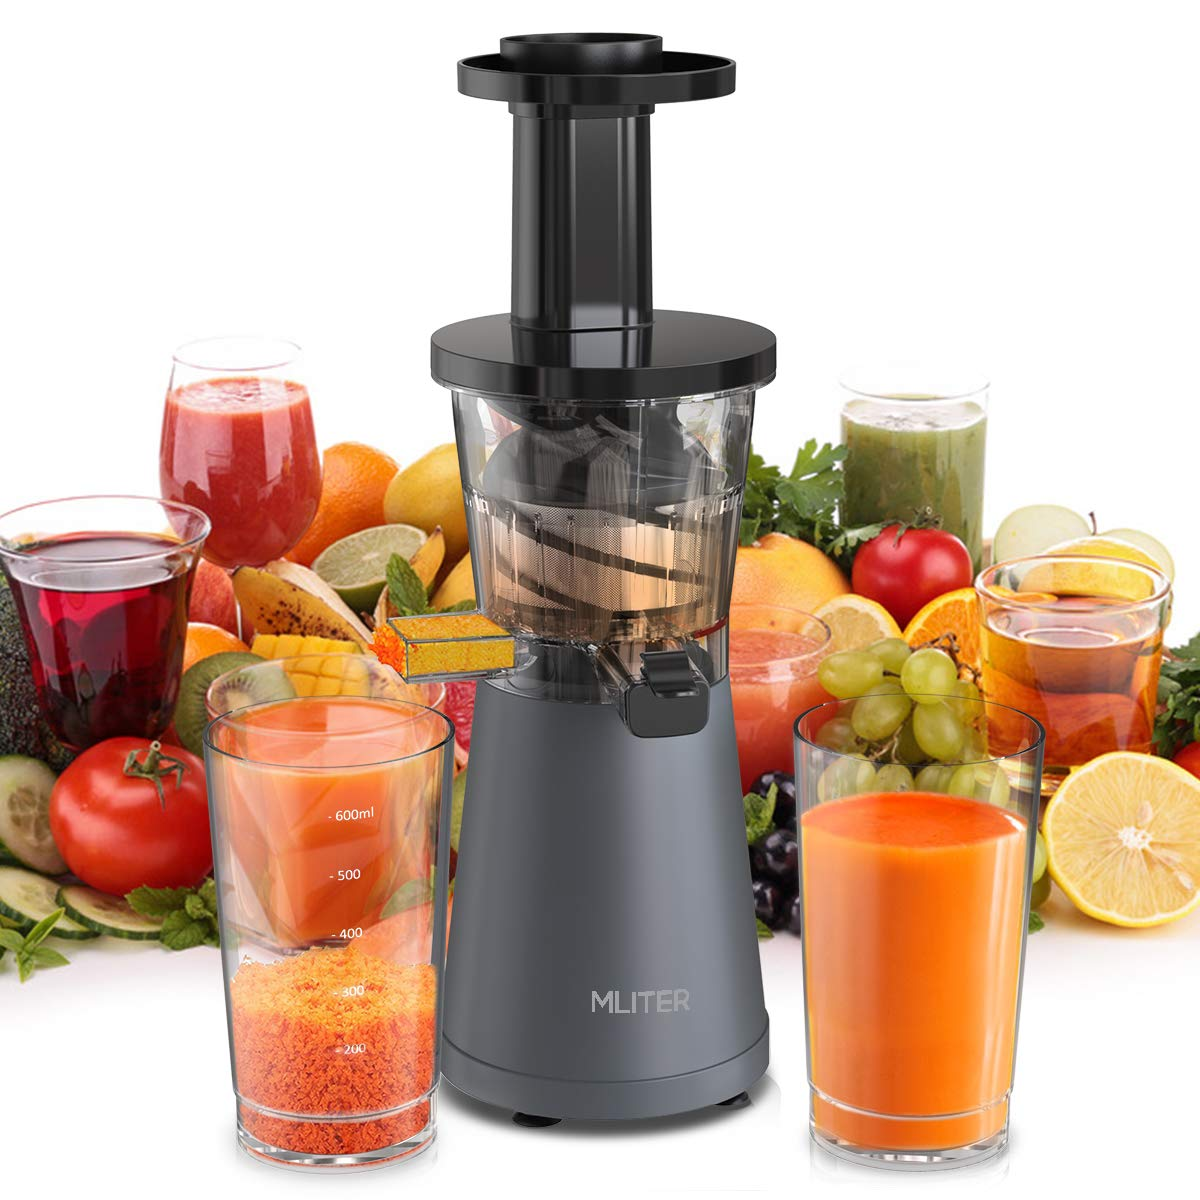 Mliter Slow Masticating Juicer, 200W Cold Press Juicer / Juice Extractor - Low Noise, High Nutrient & Anti-Oxidation, with Cleaning Brush, Two Containers for High Nutrient Fruit and Vegetable Juice, Frozen Desserts